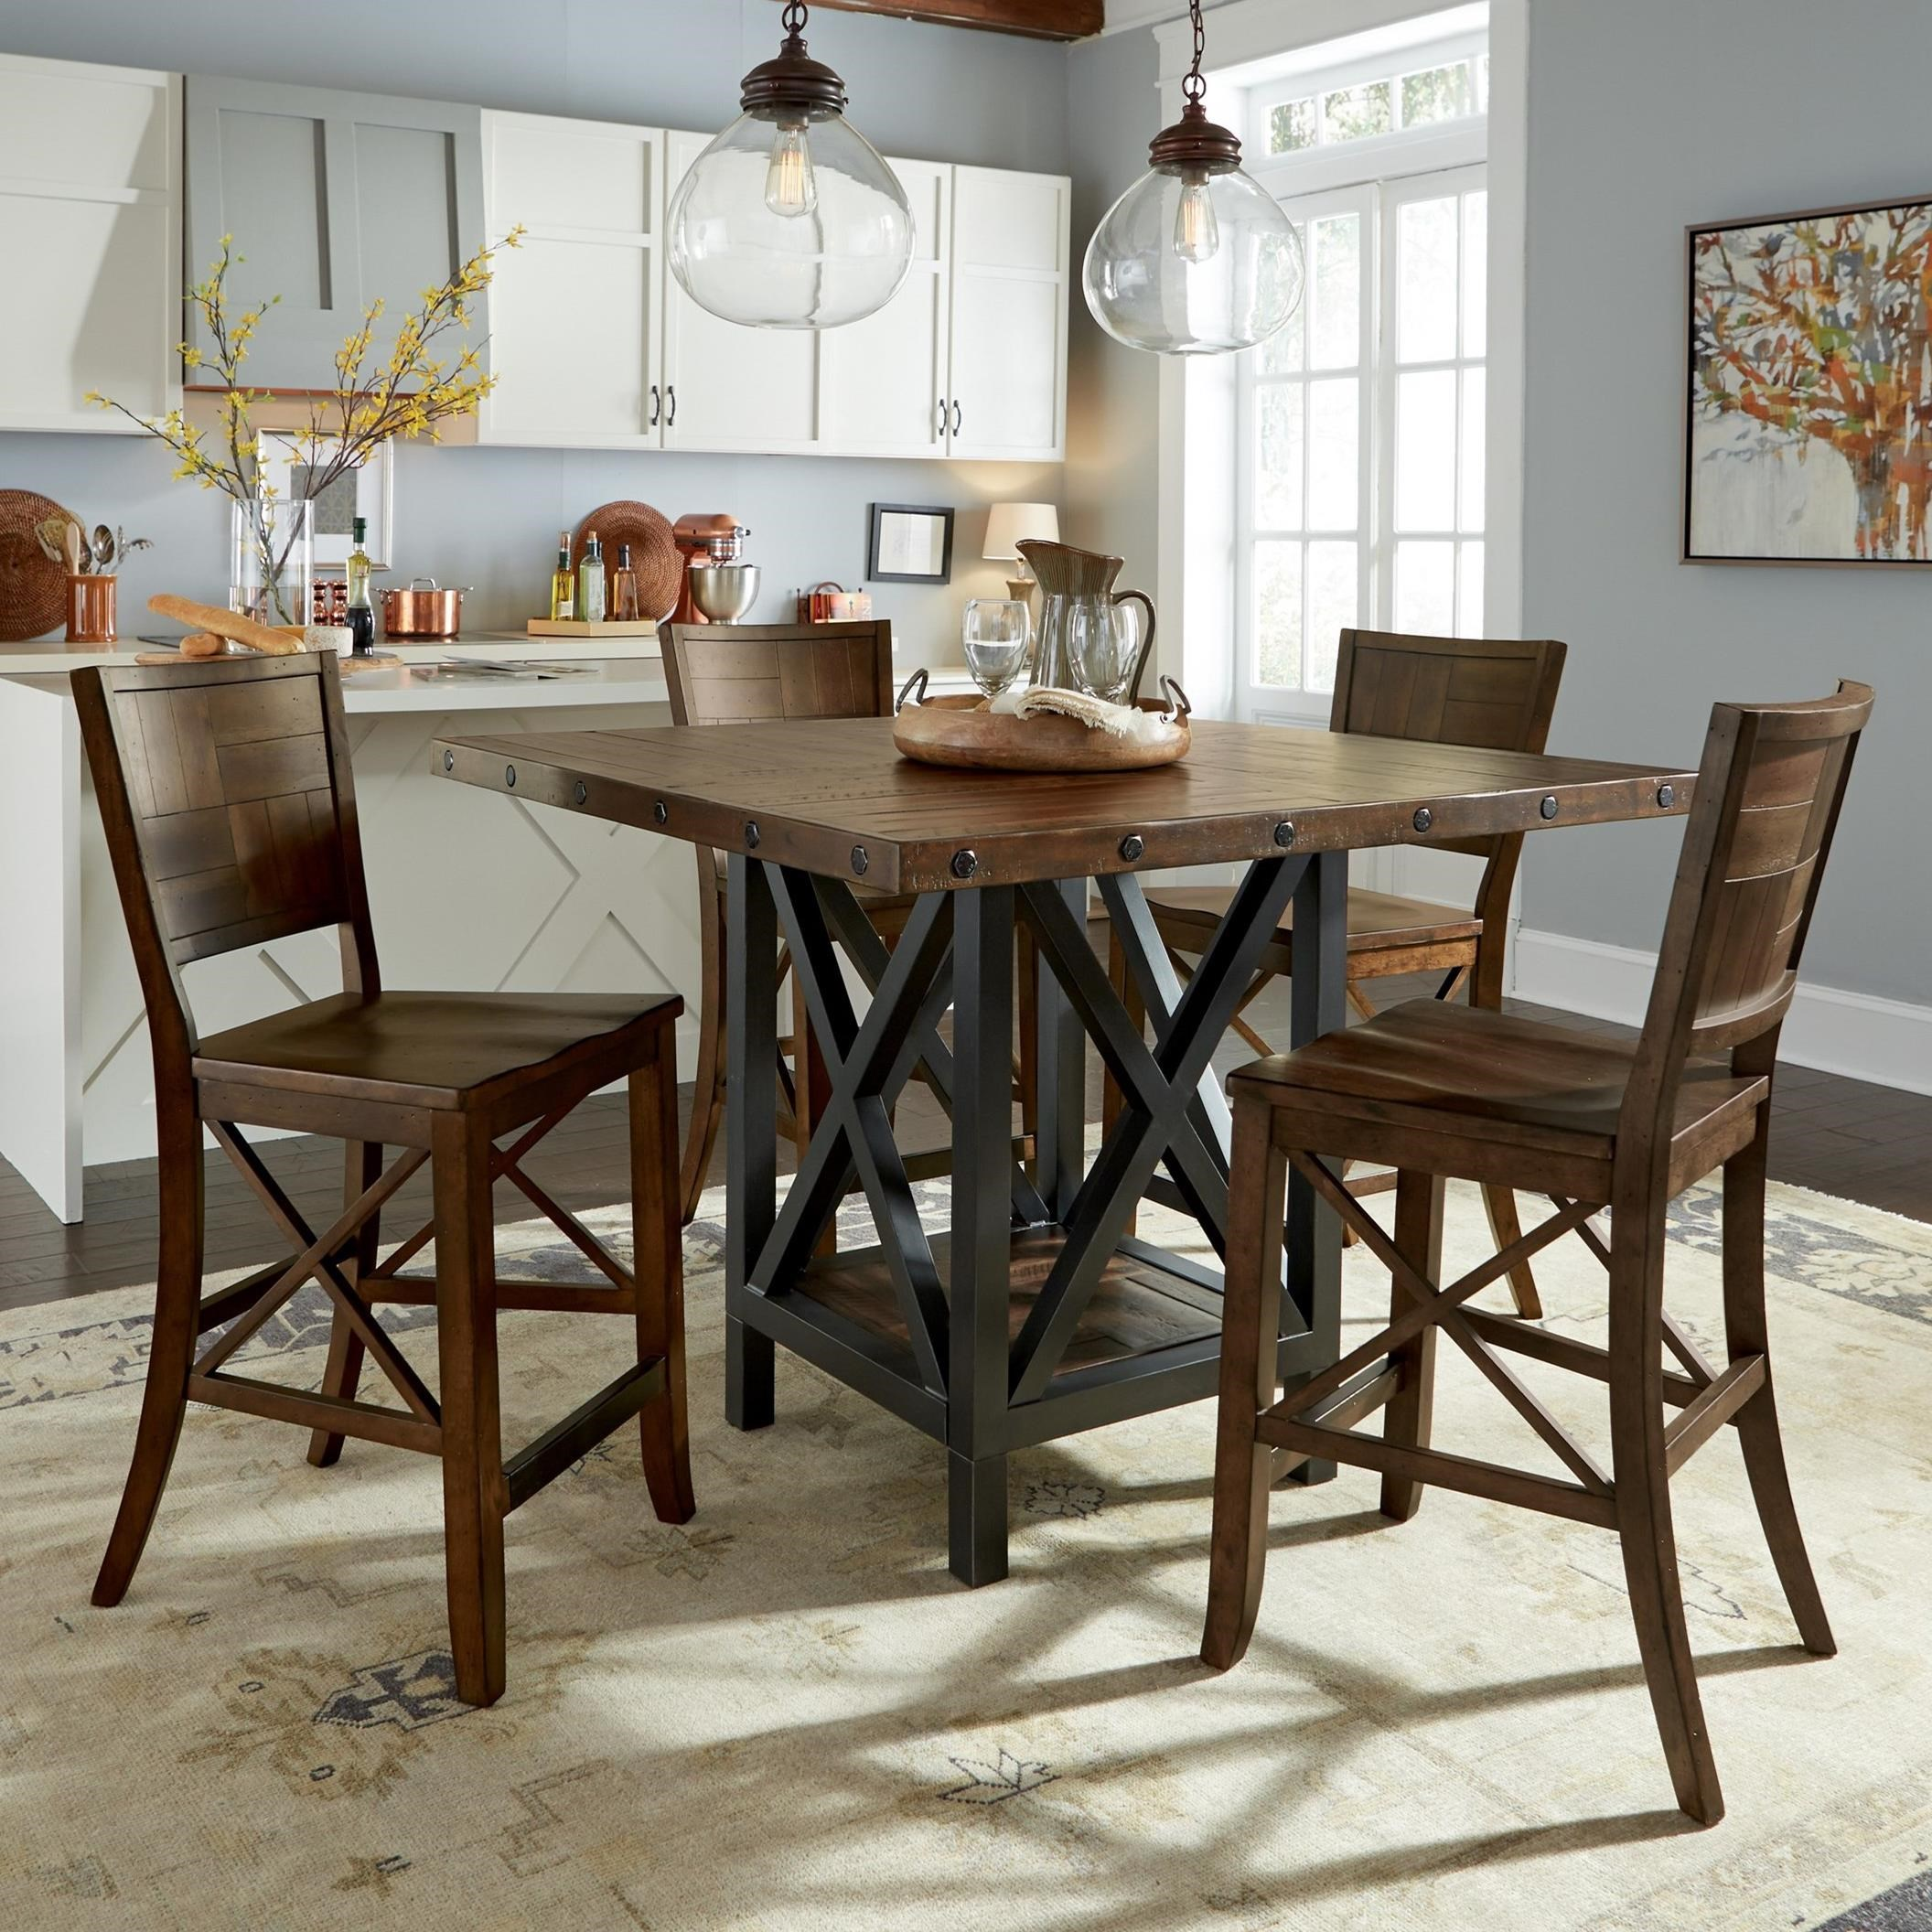 Flexsteel Wynwood Collection Carpenter 5 Piece Counter Height Dining Set    Item Number: W6722